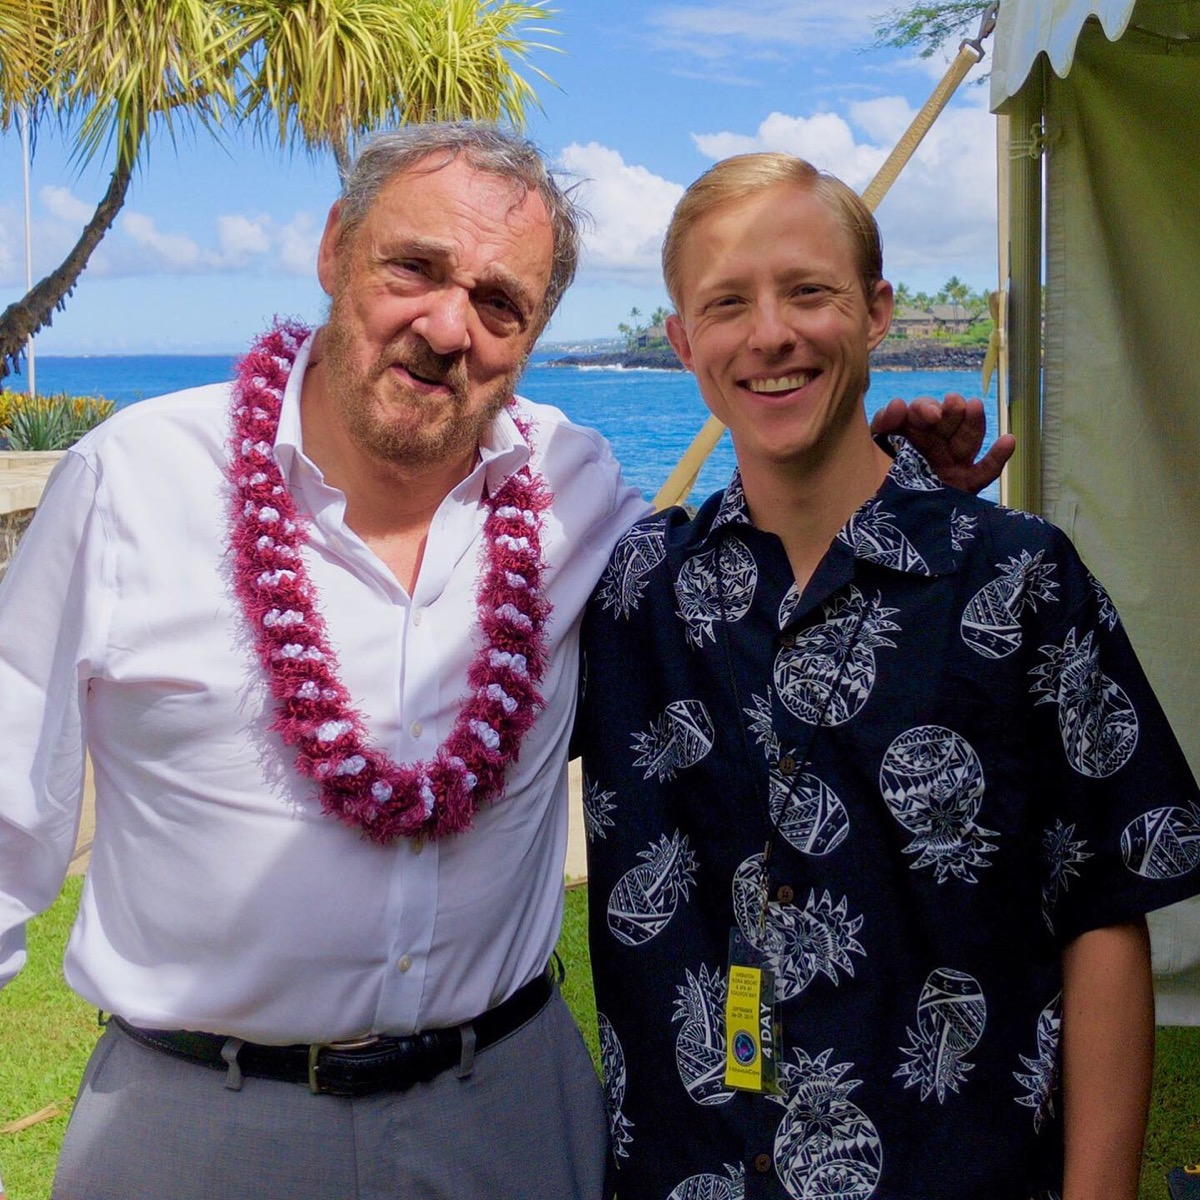 John Rhys-Davies and Andrew Crusoe at HawaiiCon 2019